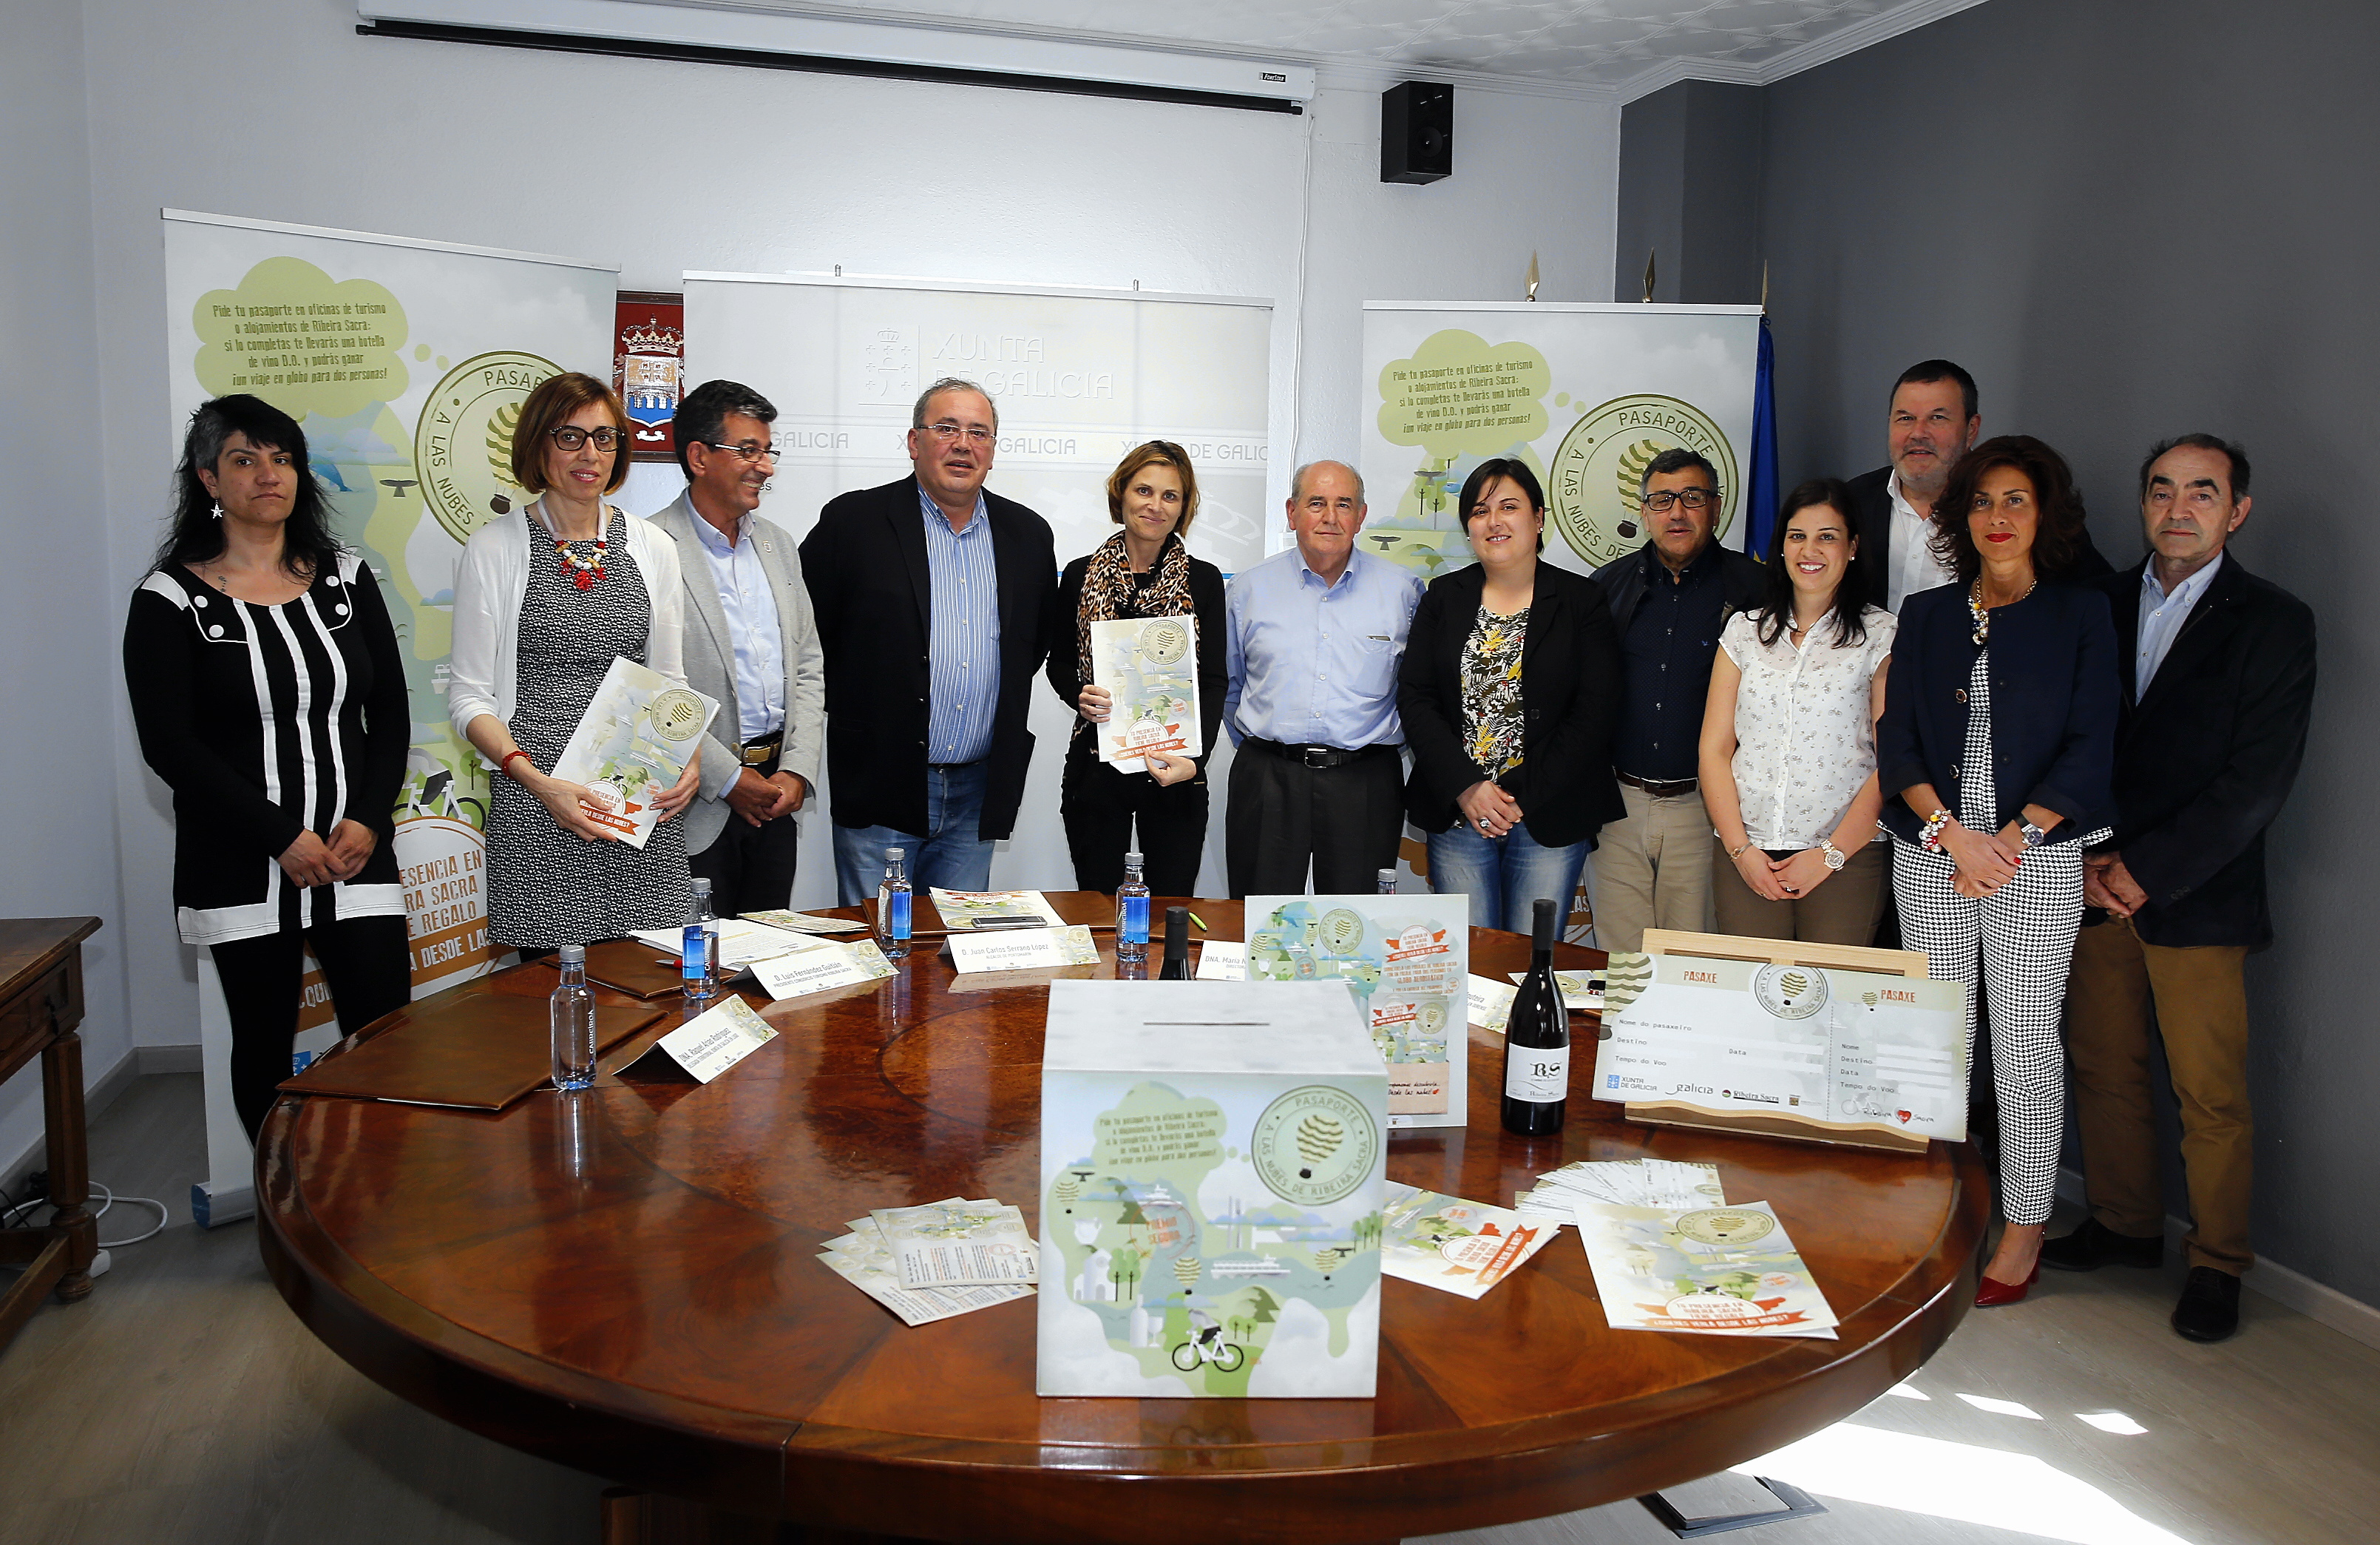 [:es]Ribeira Sacra contará con 200.000 euros de finananciación pública para su promoción como destino turístico de interiorRibeira Sacra contará con 200.000 euros de finananciación pública para a súa promoción como destino turístico de interiorRibeira Sacra will have 200,000 euros of public finananciación to promote it as a tourist destination indoor